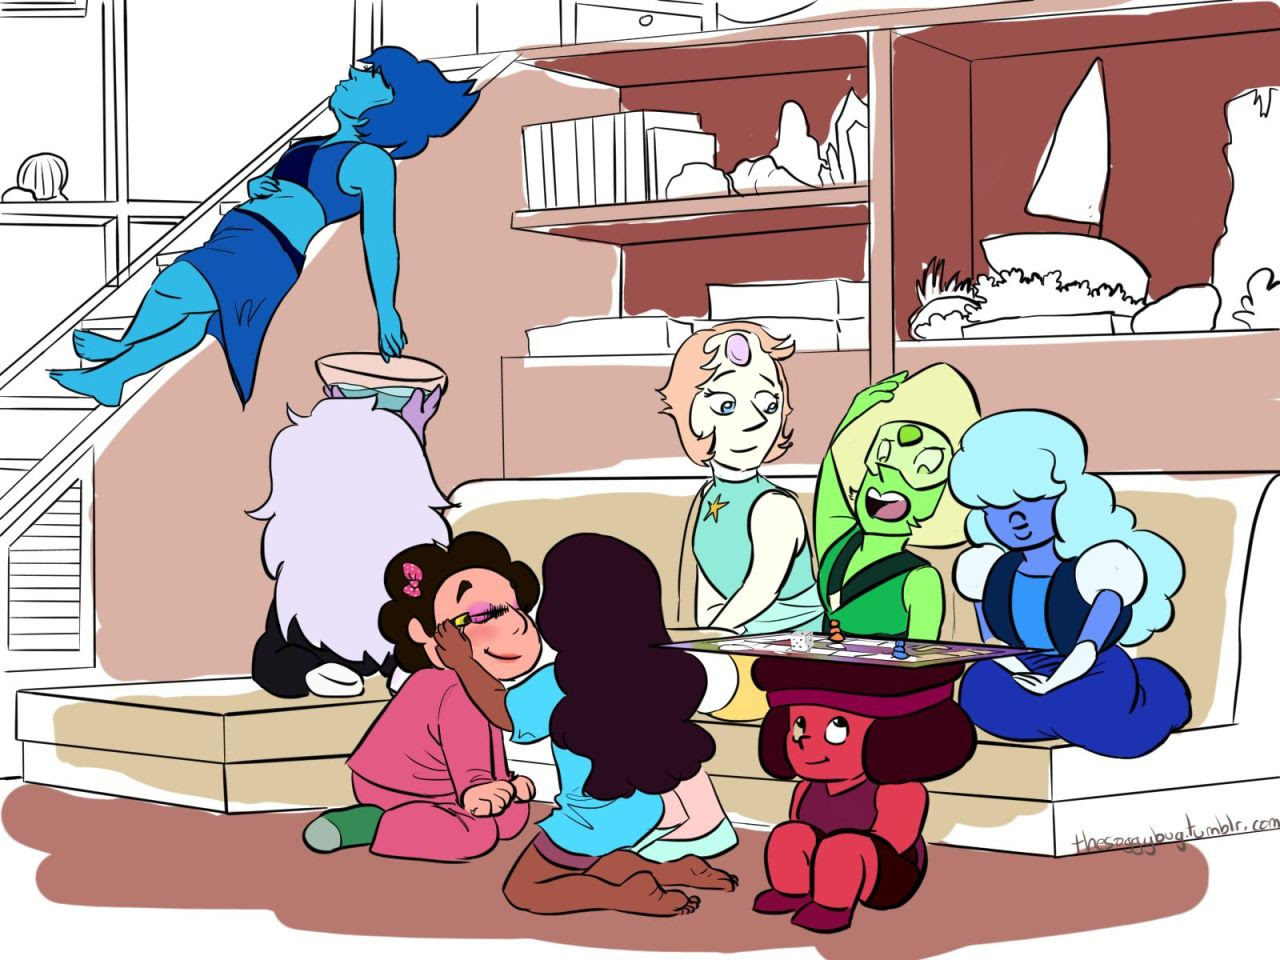 Thank you anon for the idea! Family night with the gems.